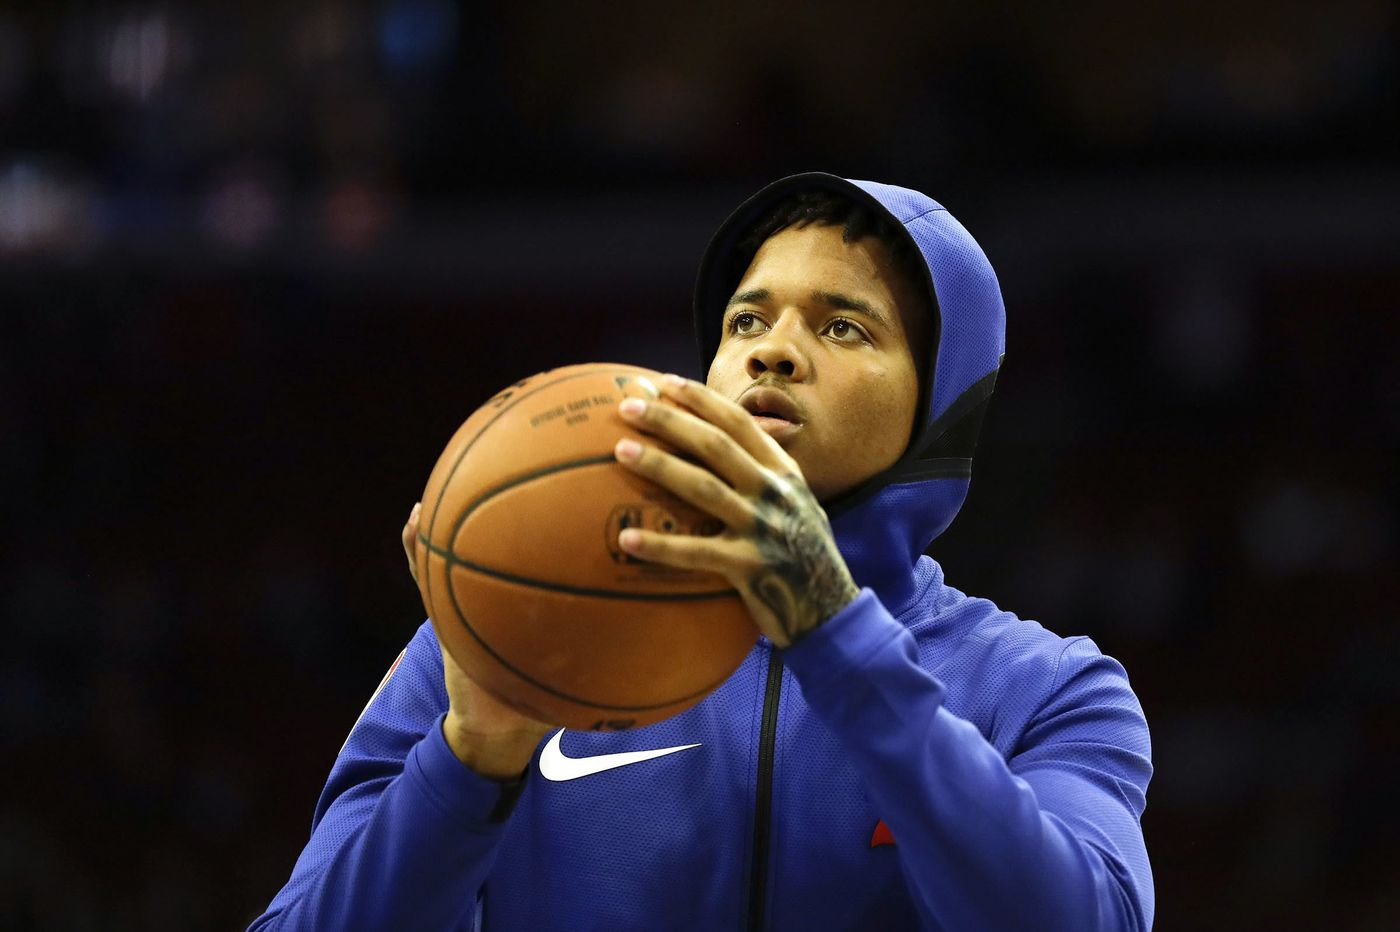 Markelle Fultz had no value, and the Sixers didn't care. That says it all. | David Murphy